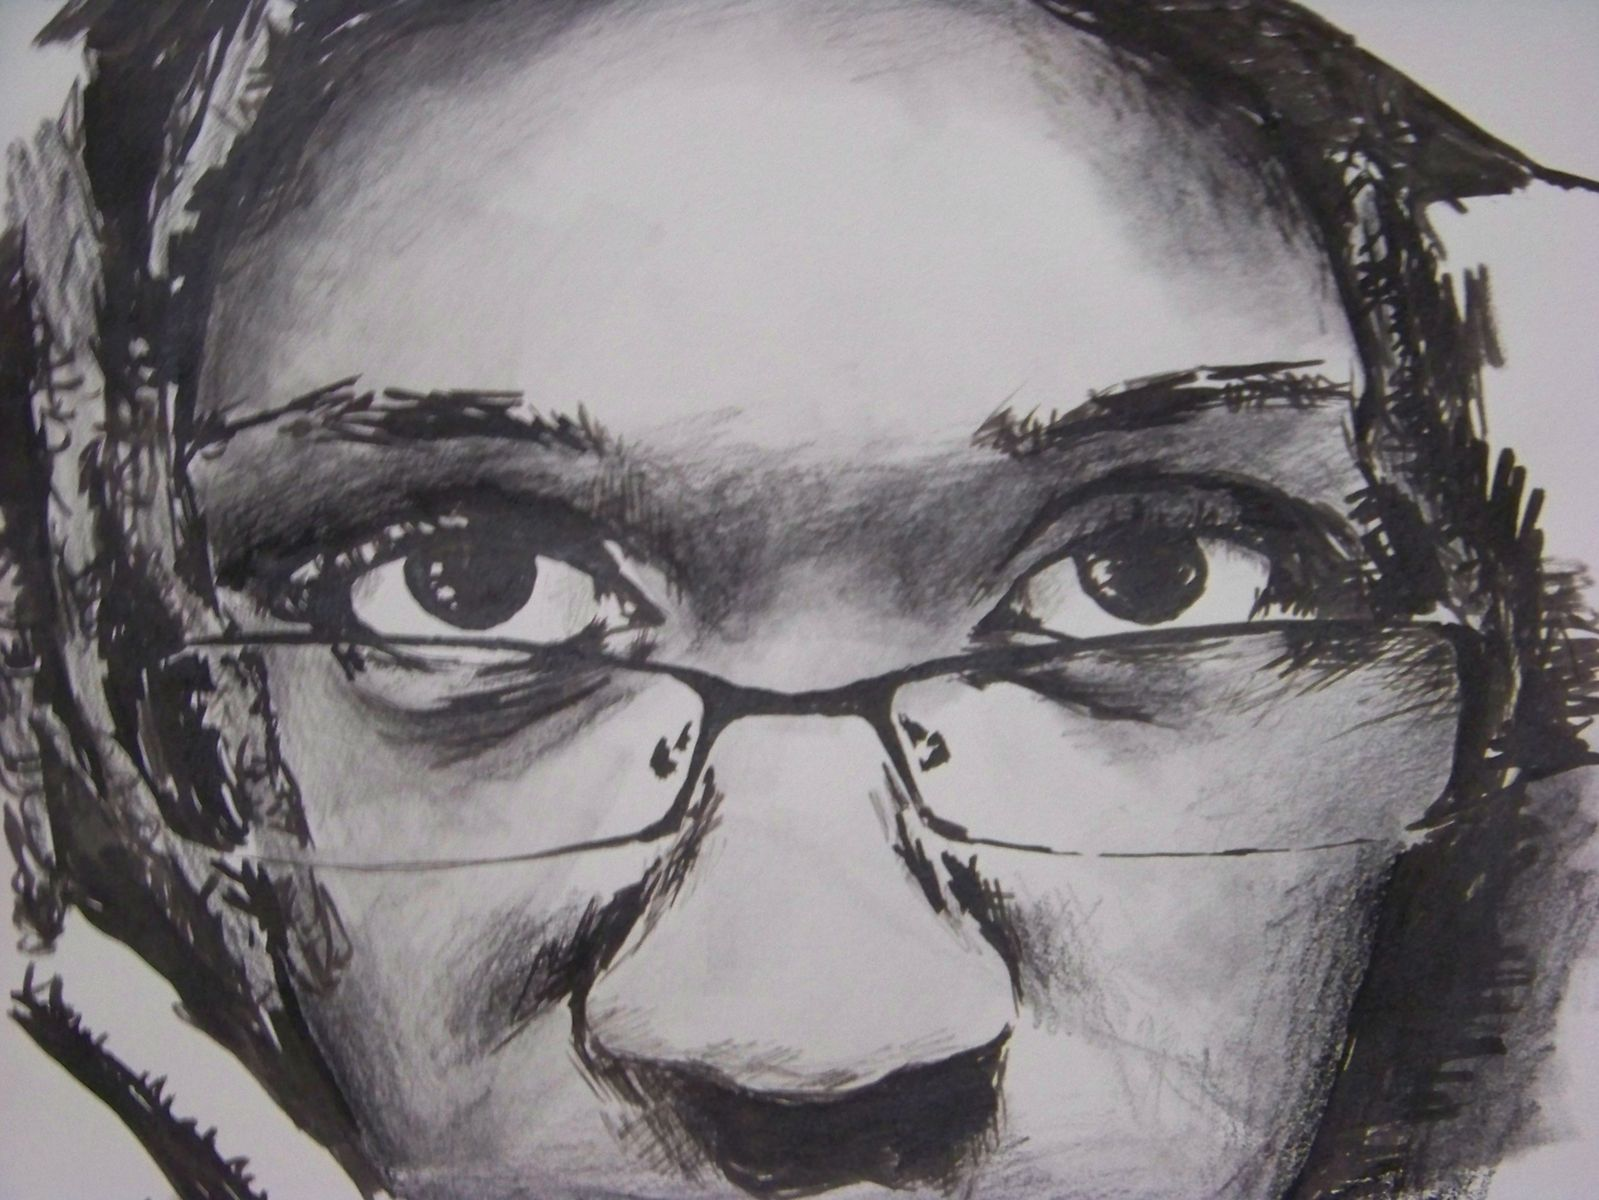 Self Portrait in ink and charcoal